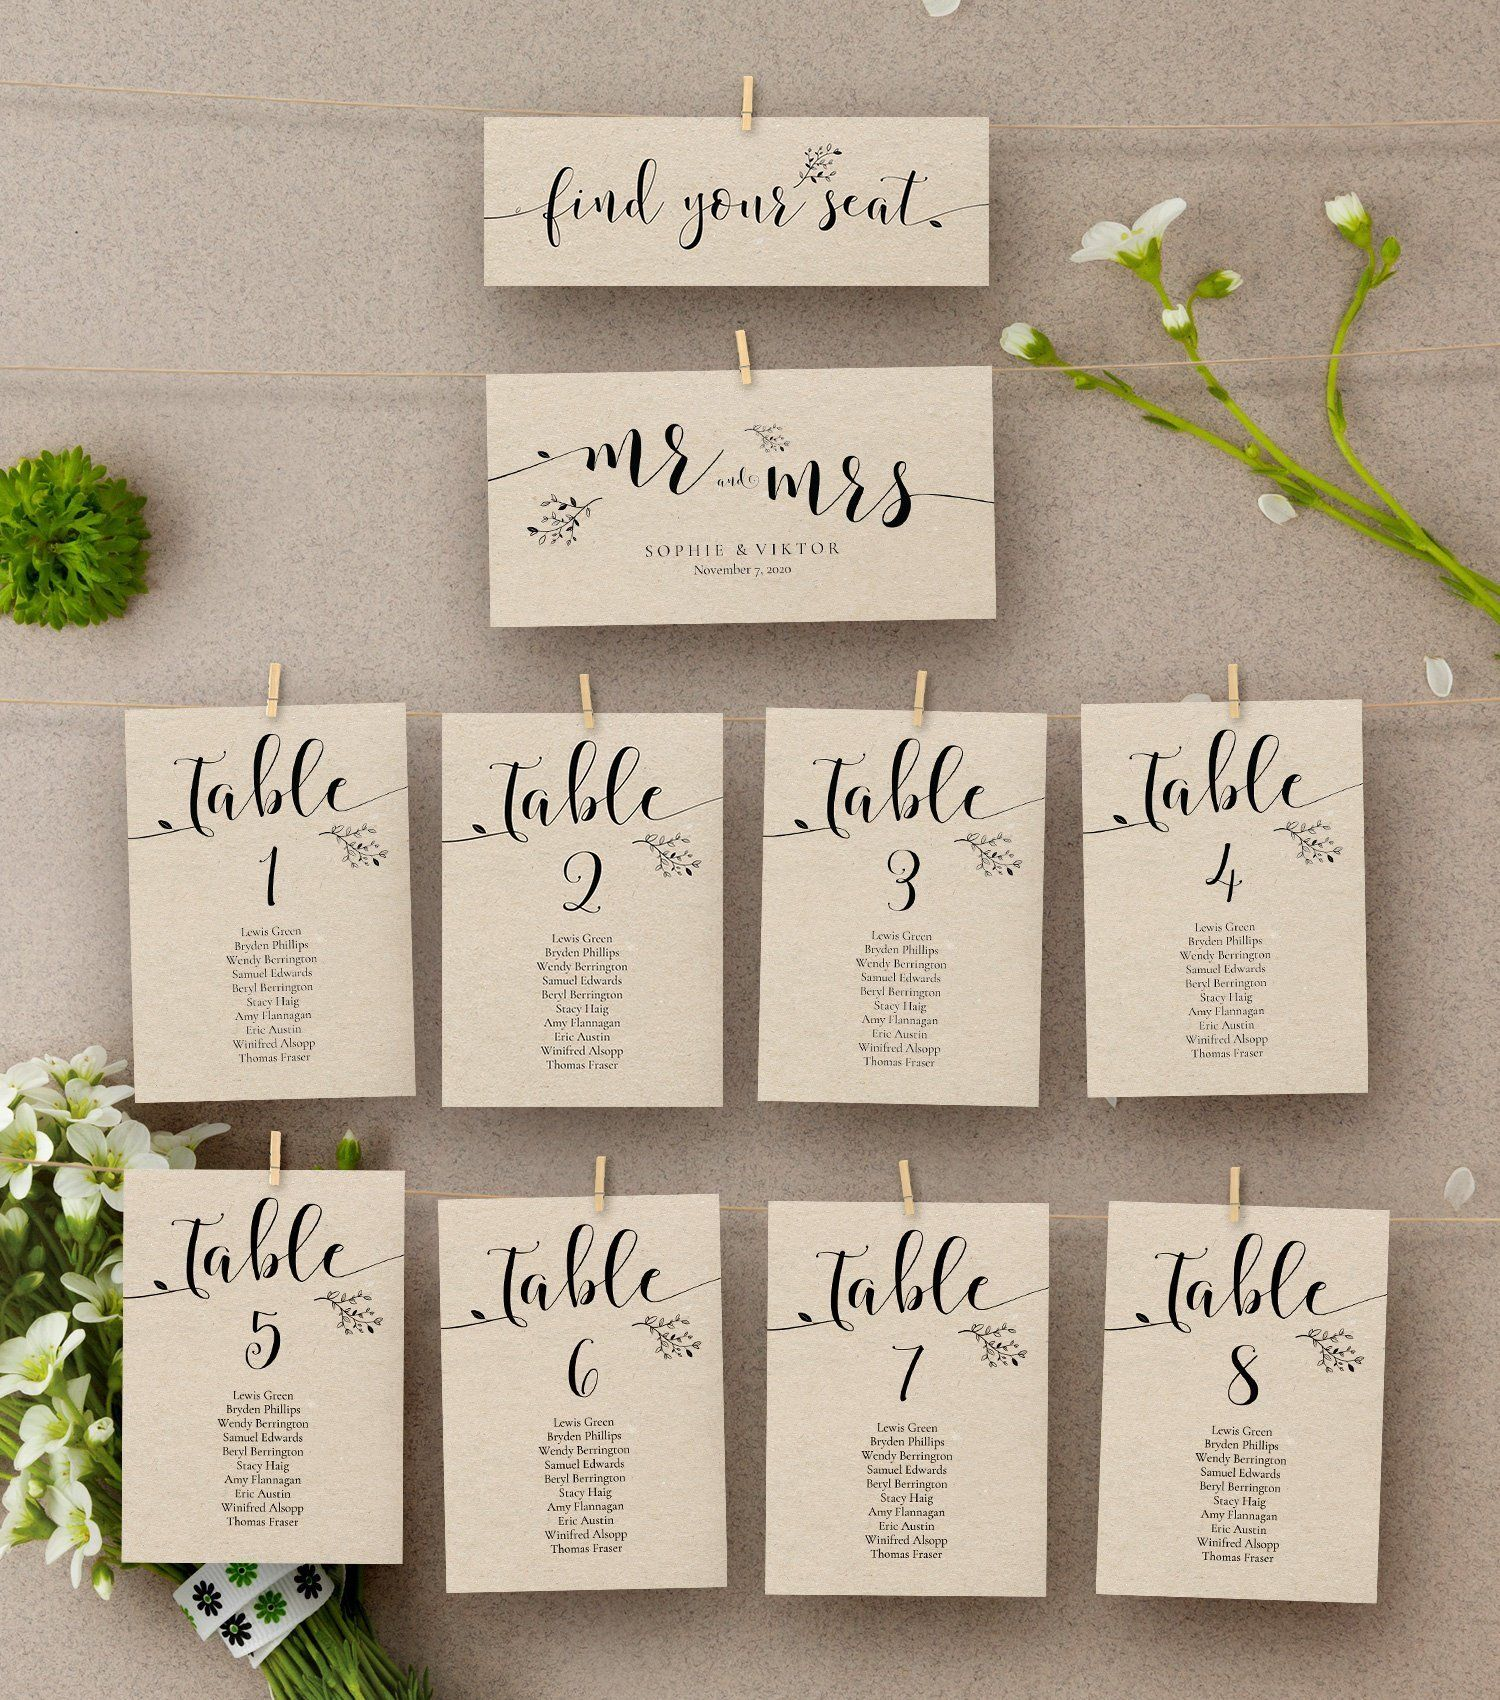 Wedding Seating Chart Template Floral Kraft Wedding Table Numbers Seating Plan Template Table Assignment Card Ab07 01 006 In 2021 Rustic Wedding Seating Wedding Seating Plan Template Seating Chart Wedding